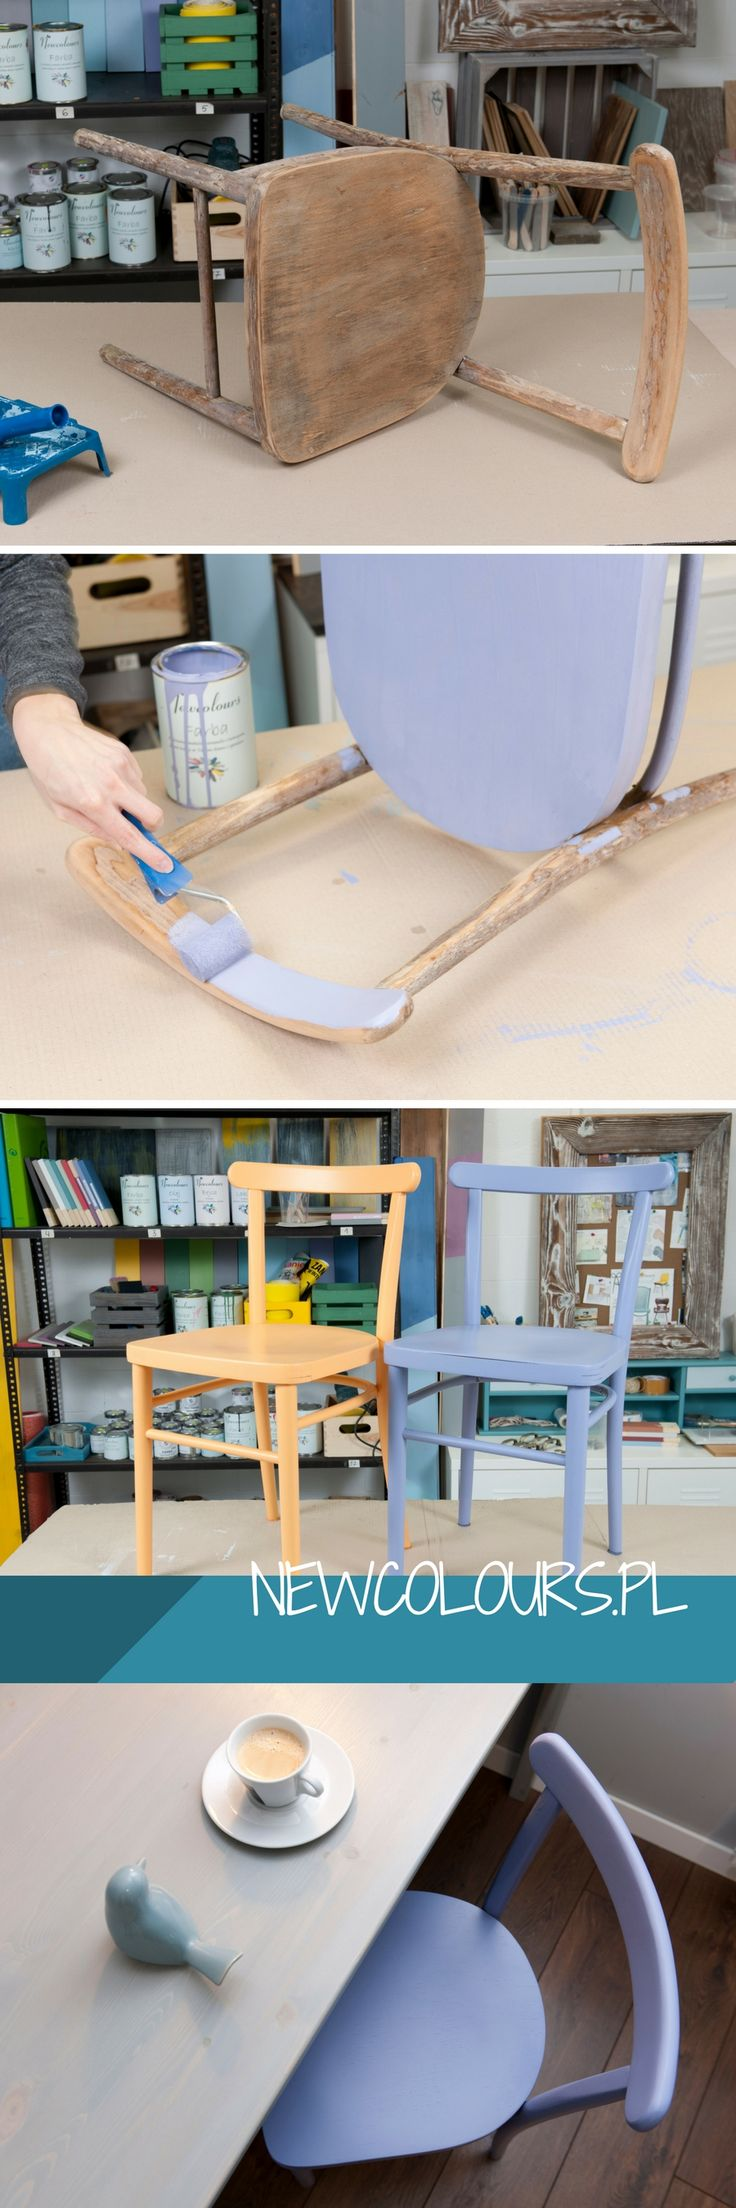 Stare krzesełko na fioletowo. Farba Newcolours :) Old chairs in violet. Newcolour Paints. DIY